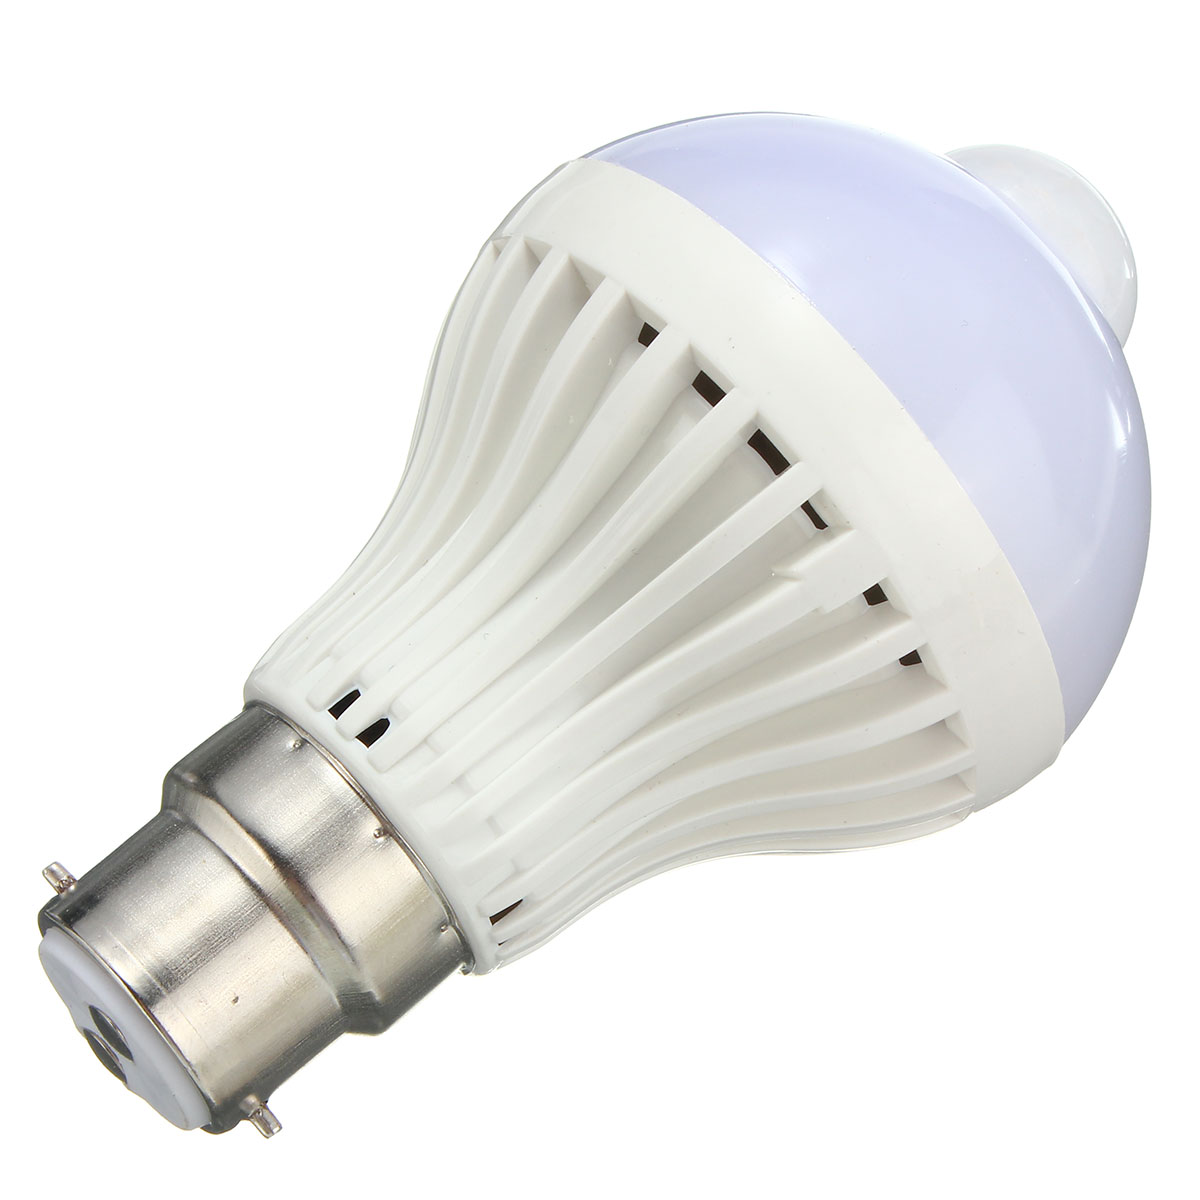 E27 B22 5W Auto PIR Motion Sensor LED Infrared Energy Saving Light Lamp Bulb AC85-265V